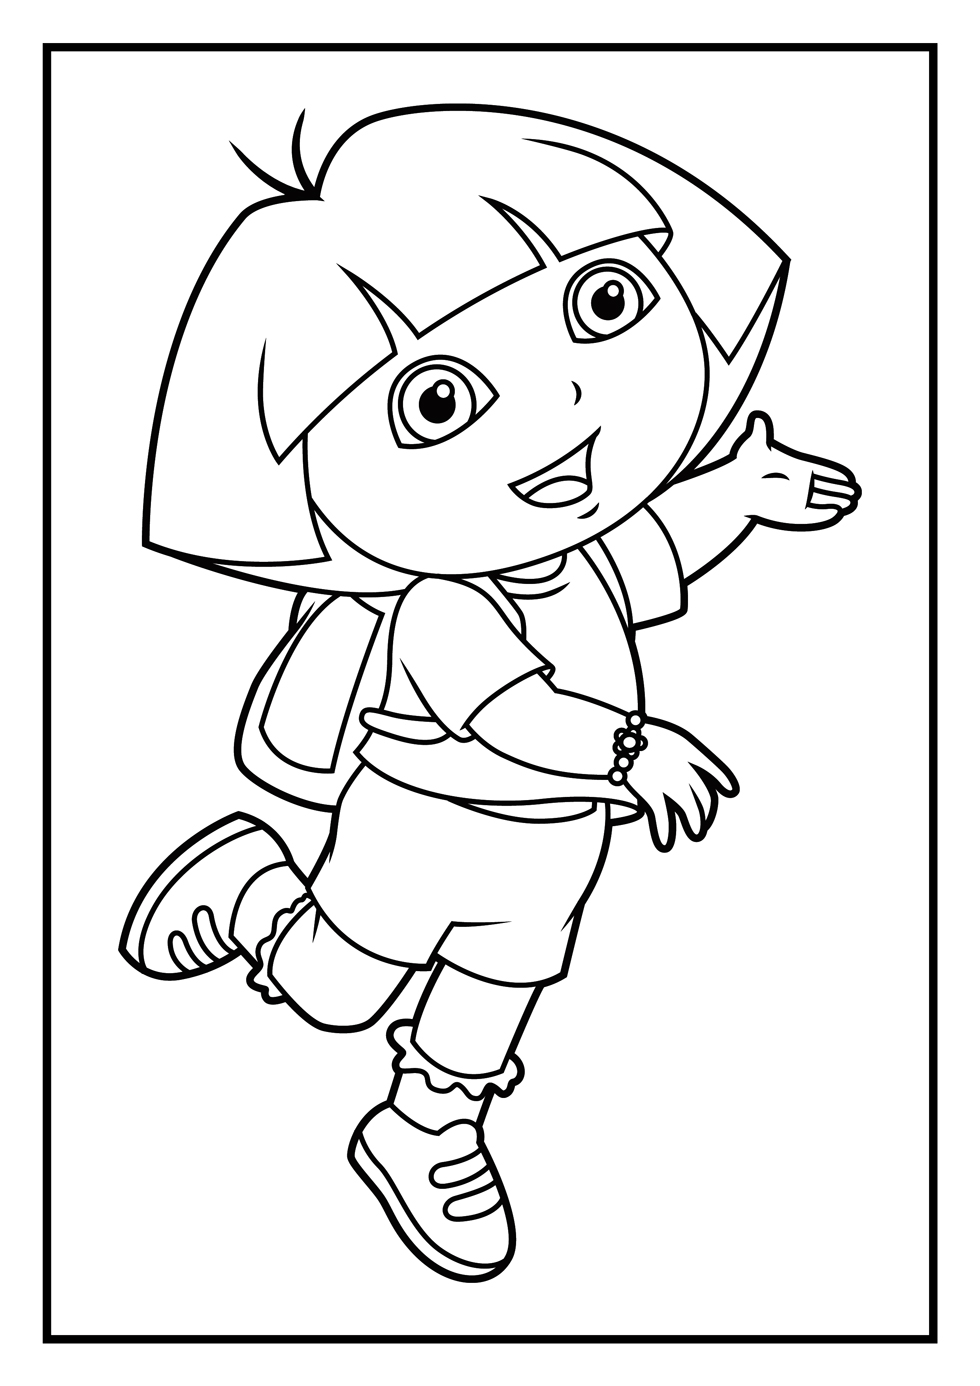 coloring picture of dora cute dora smiling coloring play free coloring game online dora coloring of picture